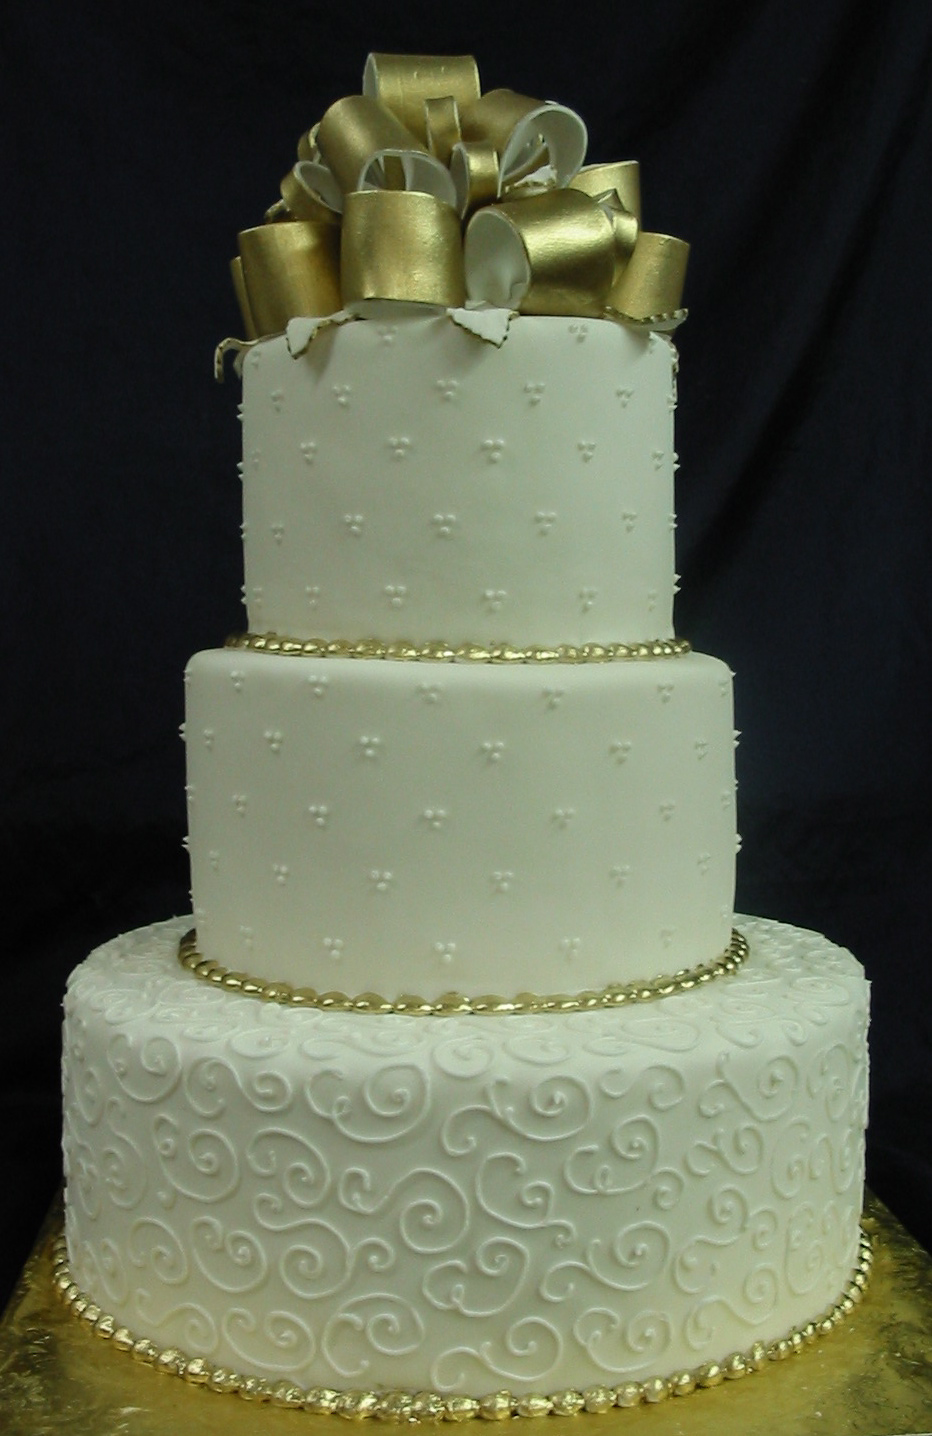 Simple tri-dot wedding cake